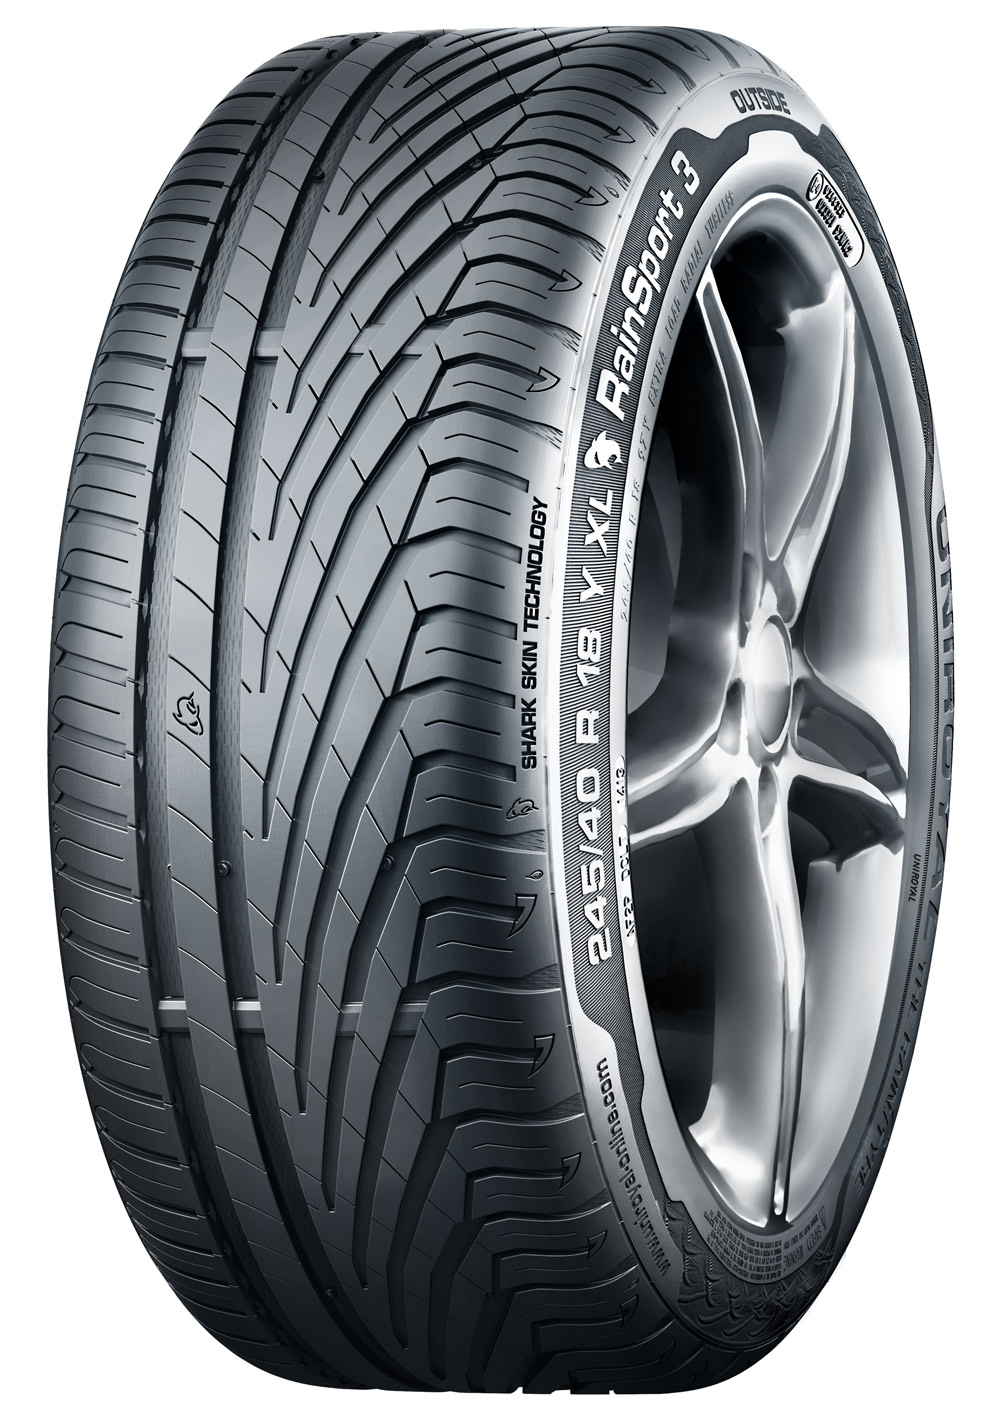 Buy new Uniroyal RainSport 3 tyres online from PTA Garage Services